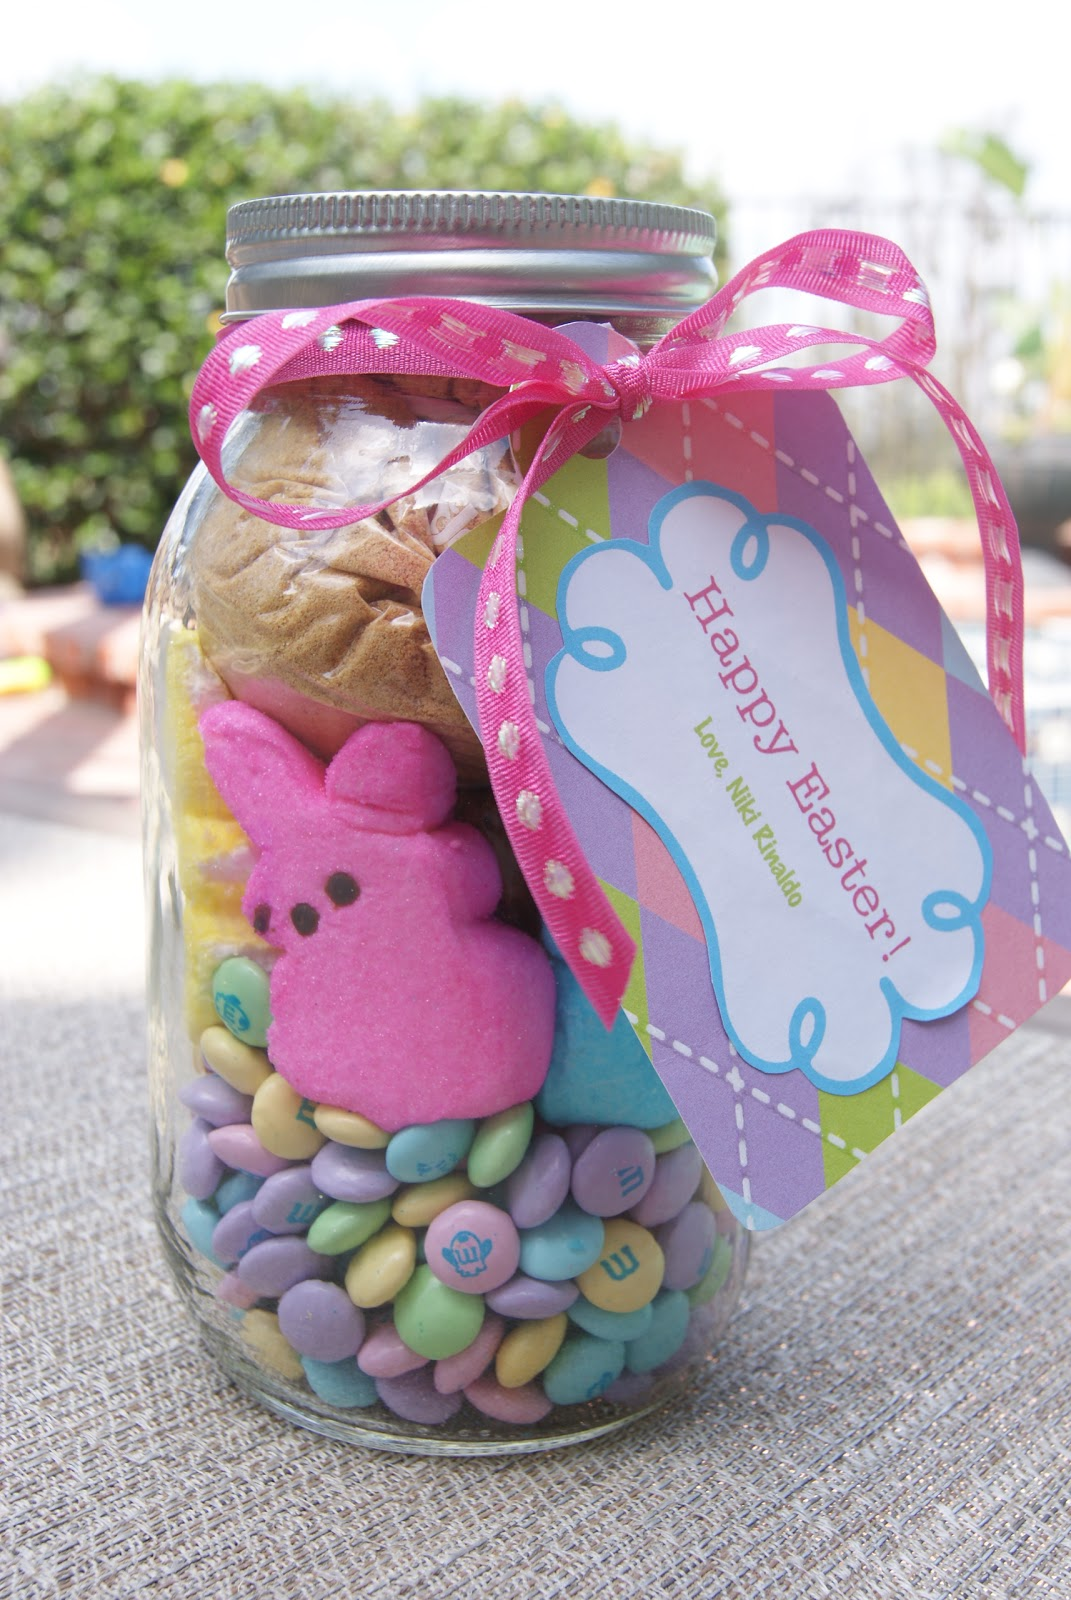 How to make Bunny Brownies in a jar (Bunny Smores) | BubbleCrumb